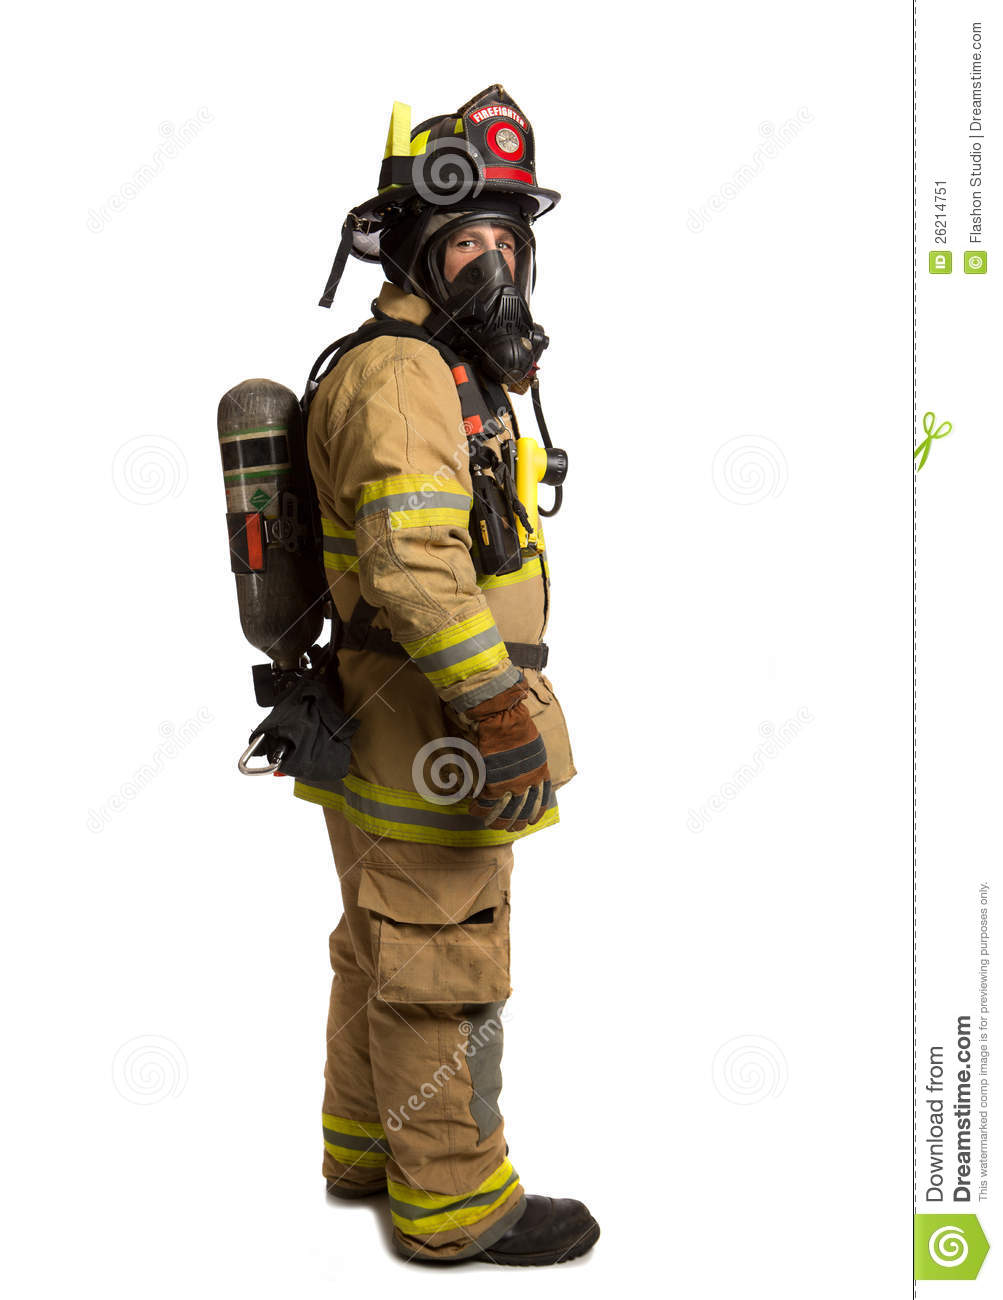 Firefighter With Mask And Airpack Protective Suit Stock Image - Image ...